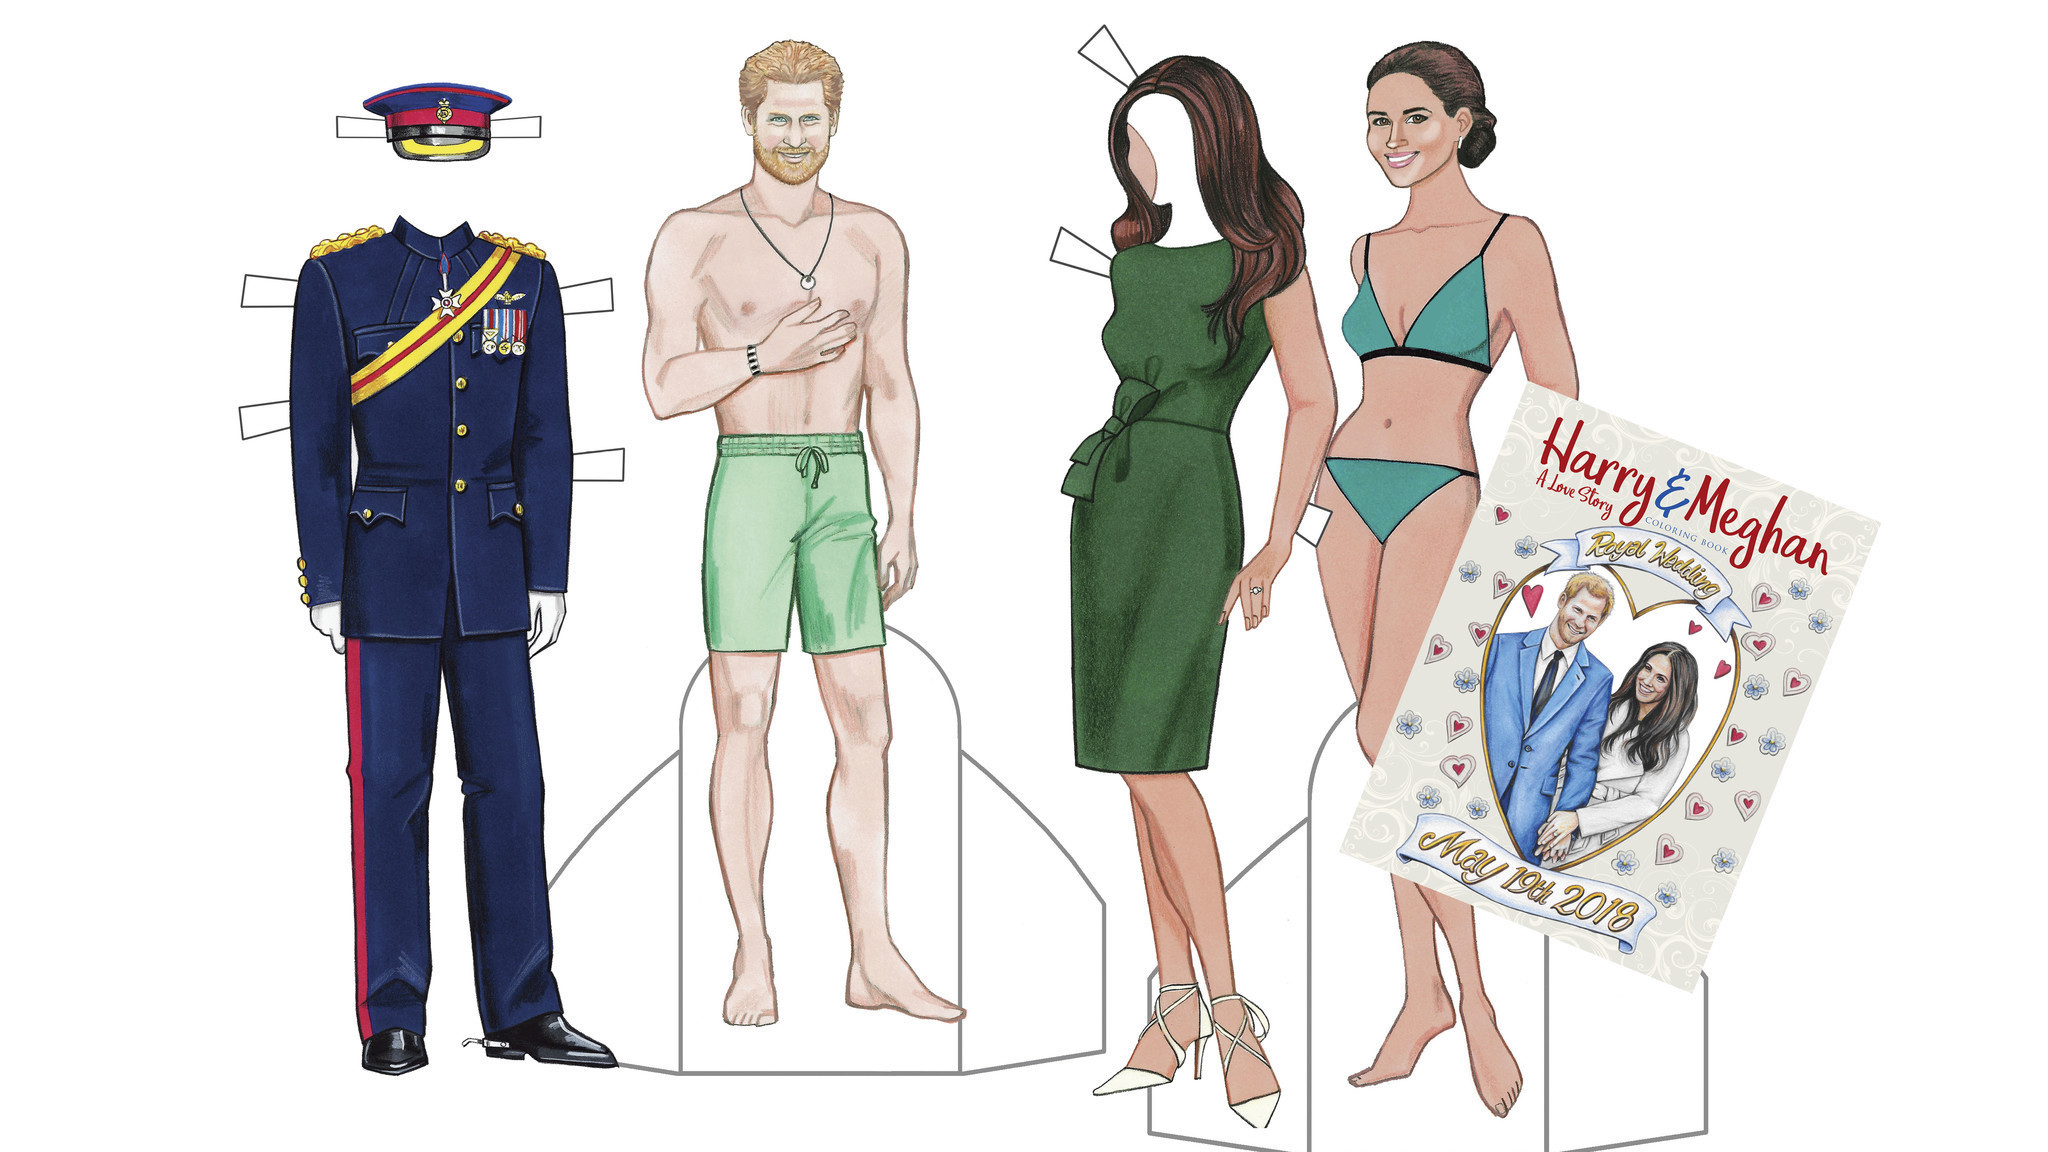 Harry and Meghan paper dolls capture